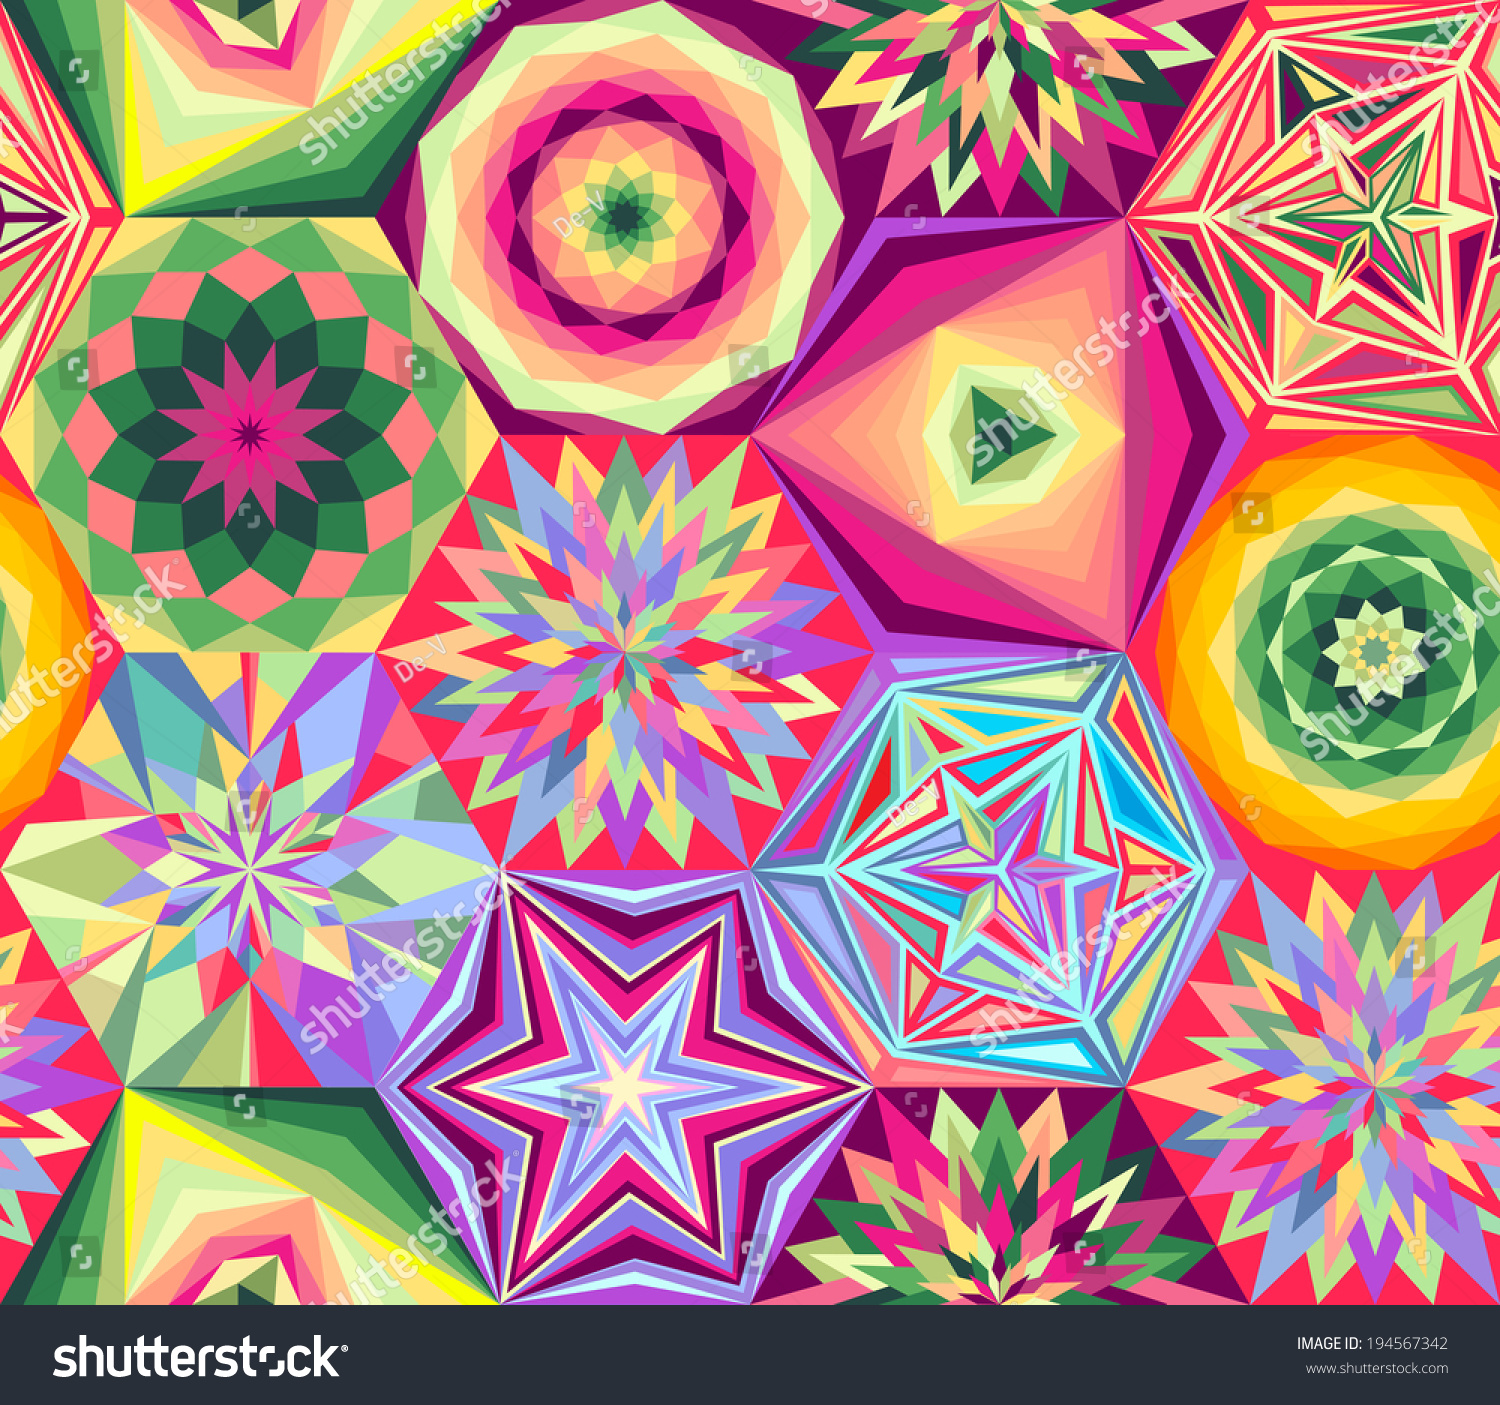 Abstract Colorful Vintage Geometric Wallpaper Pattern